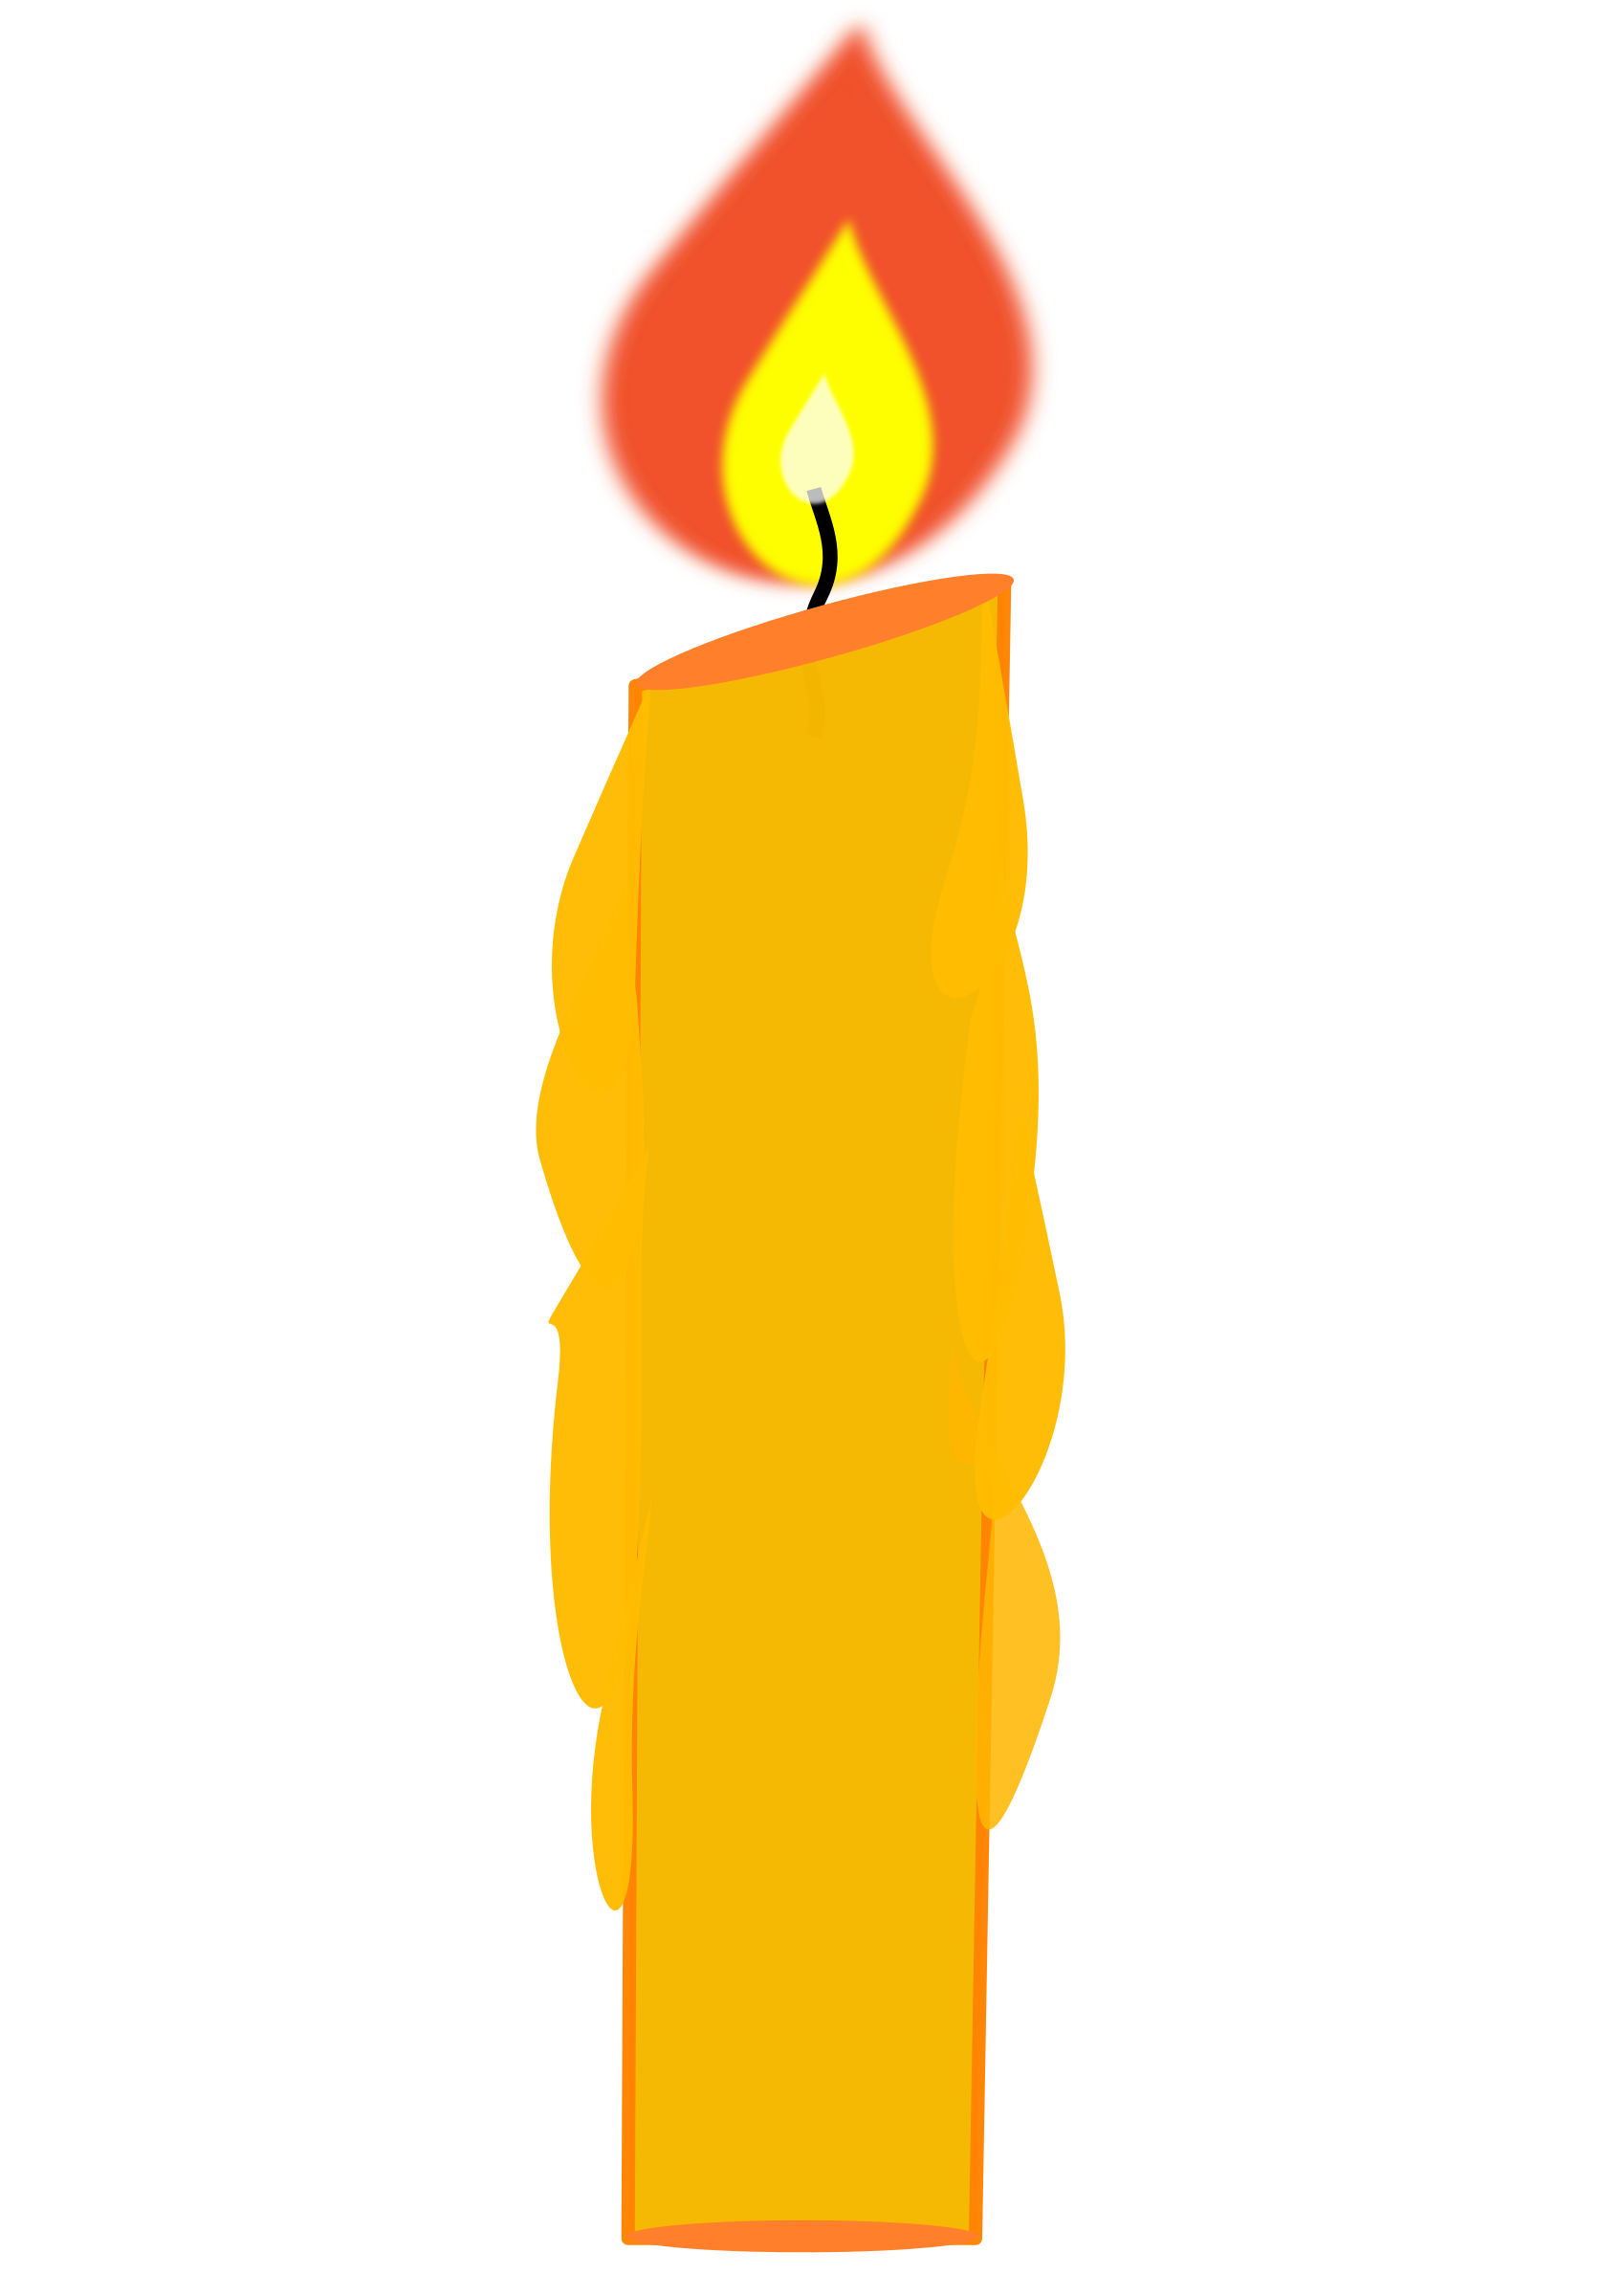 Wonderful Clipart - Candle, Candles DX78